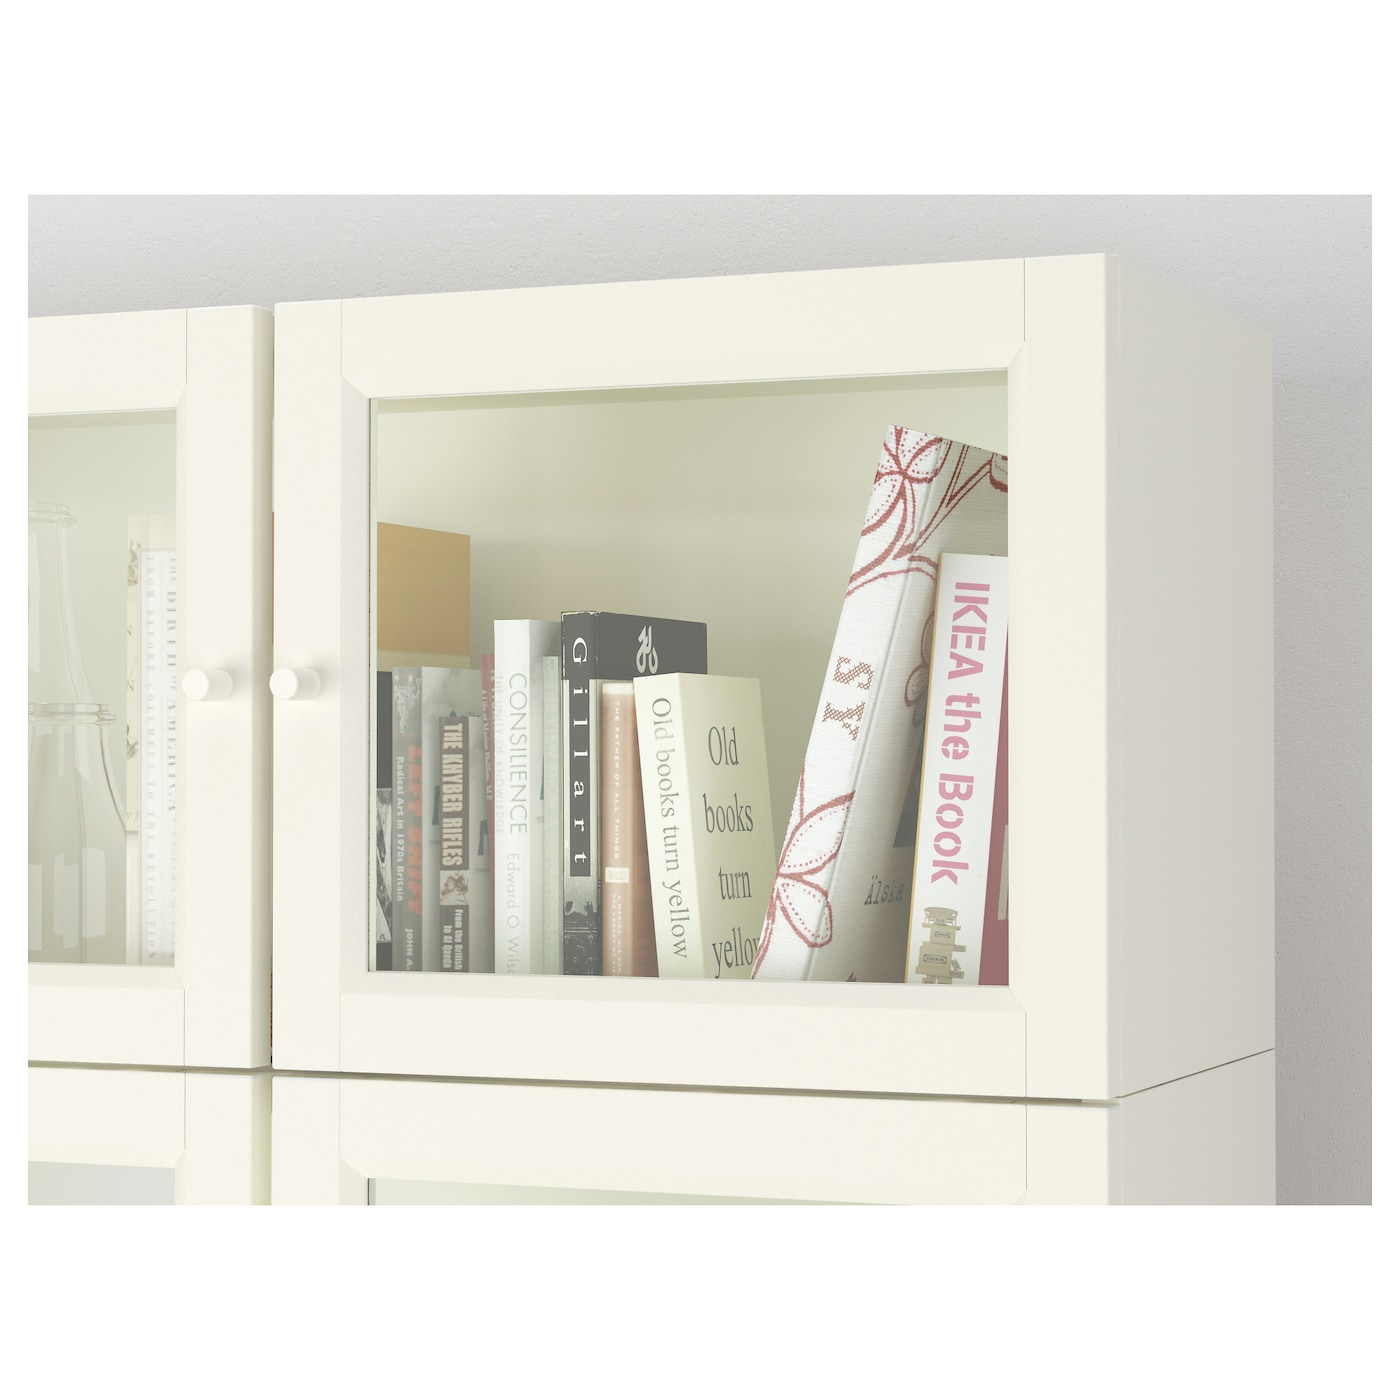 Http www ikea com 80 gb en images products billy morliden bookcase oak - Ikea Billy Oxberg Bookcase Adjustable Shelves Adapt Space Between Shelves According To Your Needs